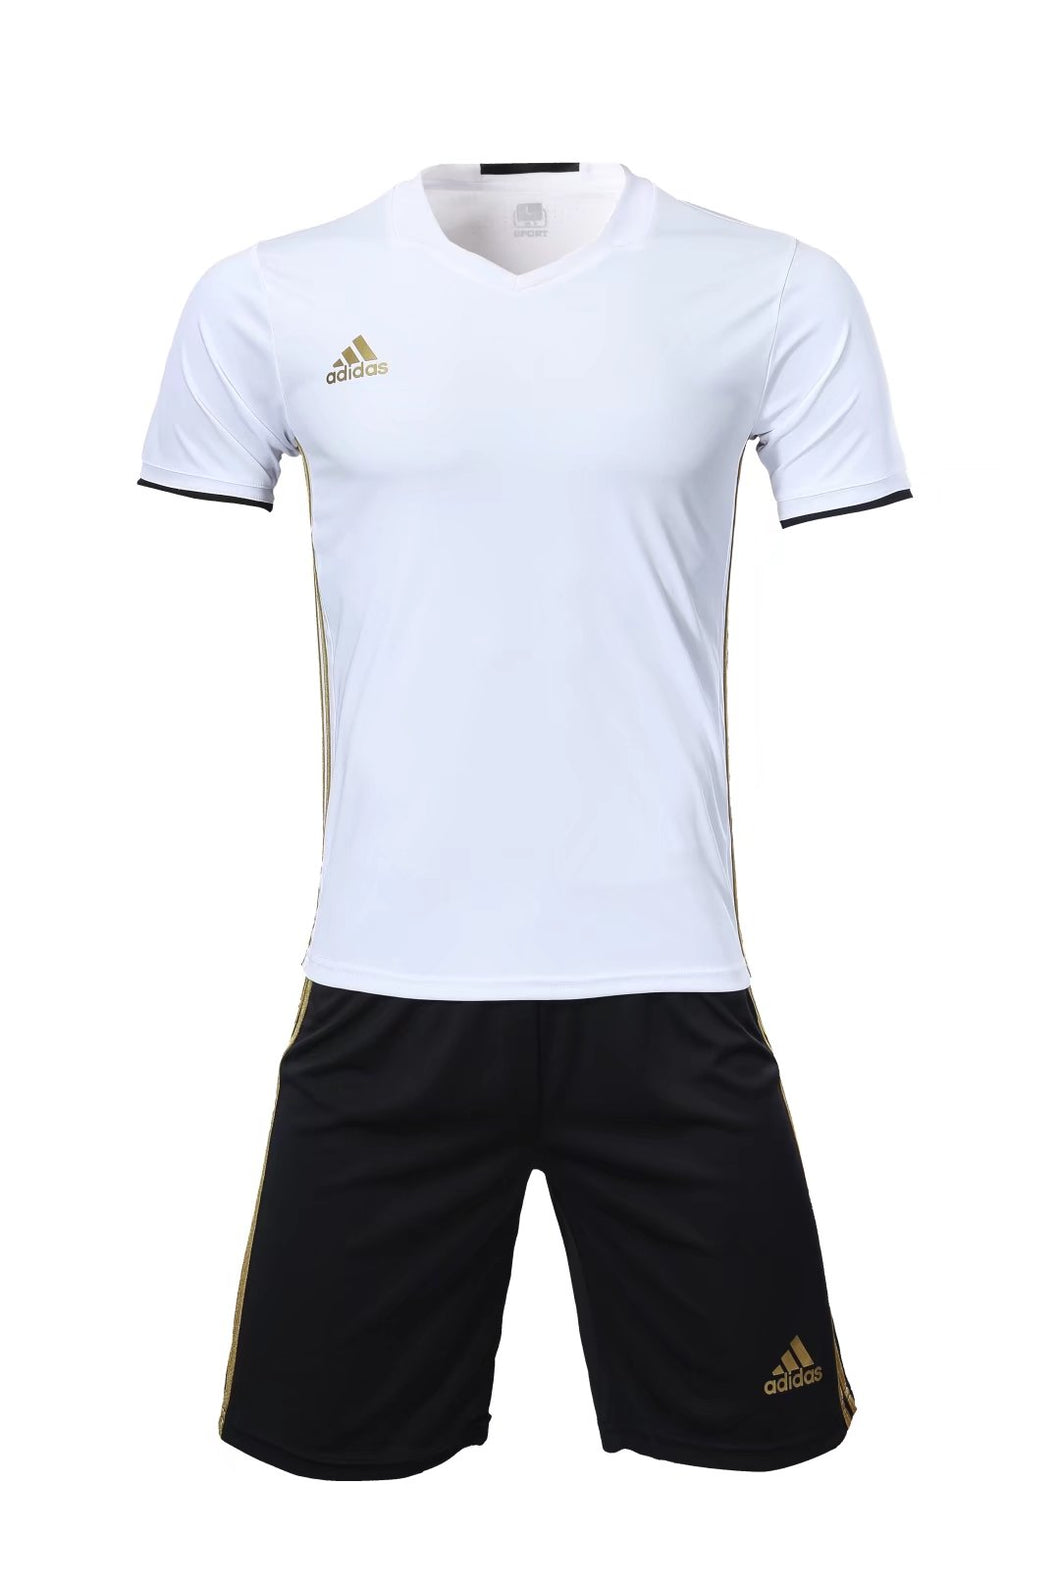 Adidas Full Football Kit Adult Sizes only - White with 3 Stripes and Black shorts